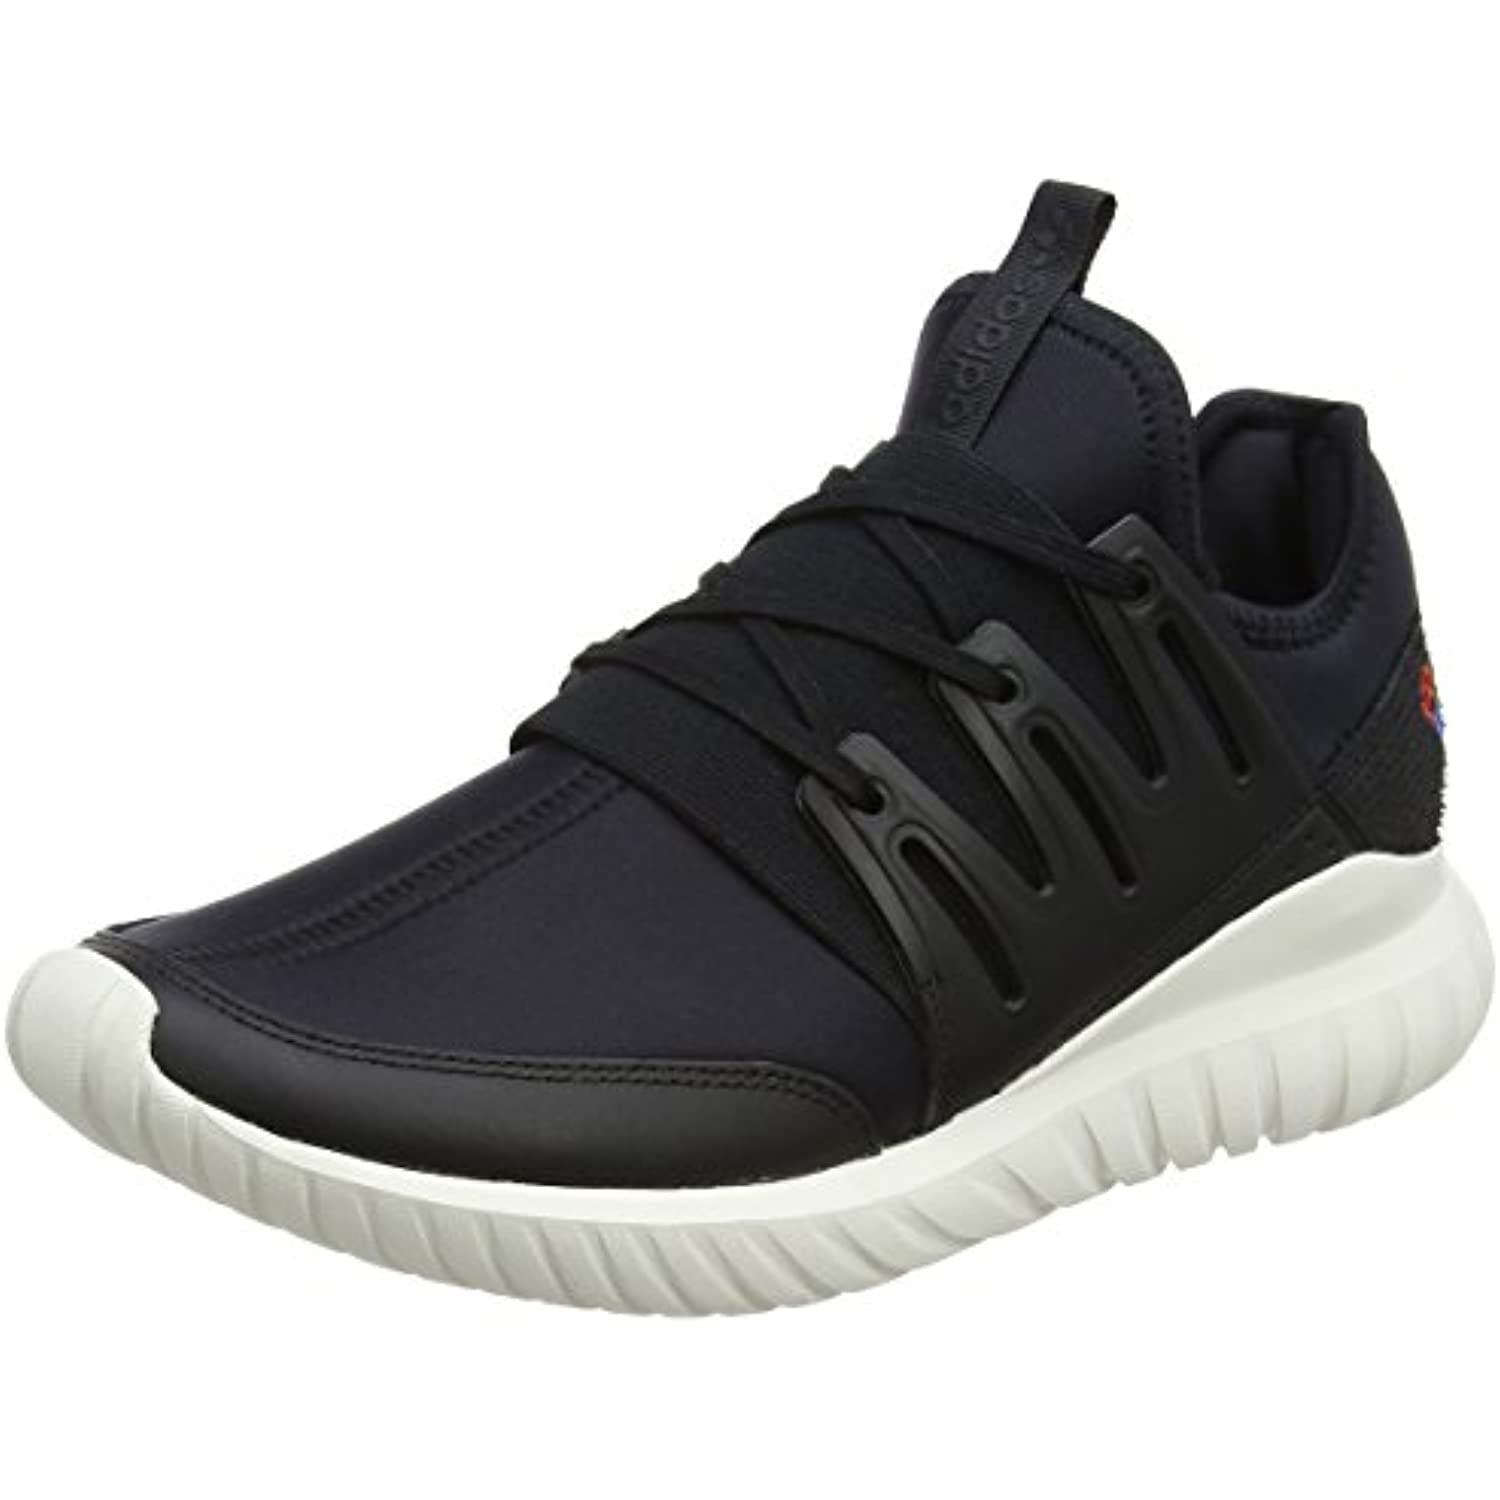 Adidas Tubular Radial CNY, Chaussures de Running Homme Homme